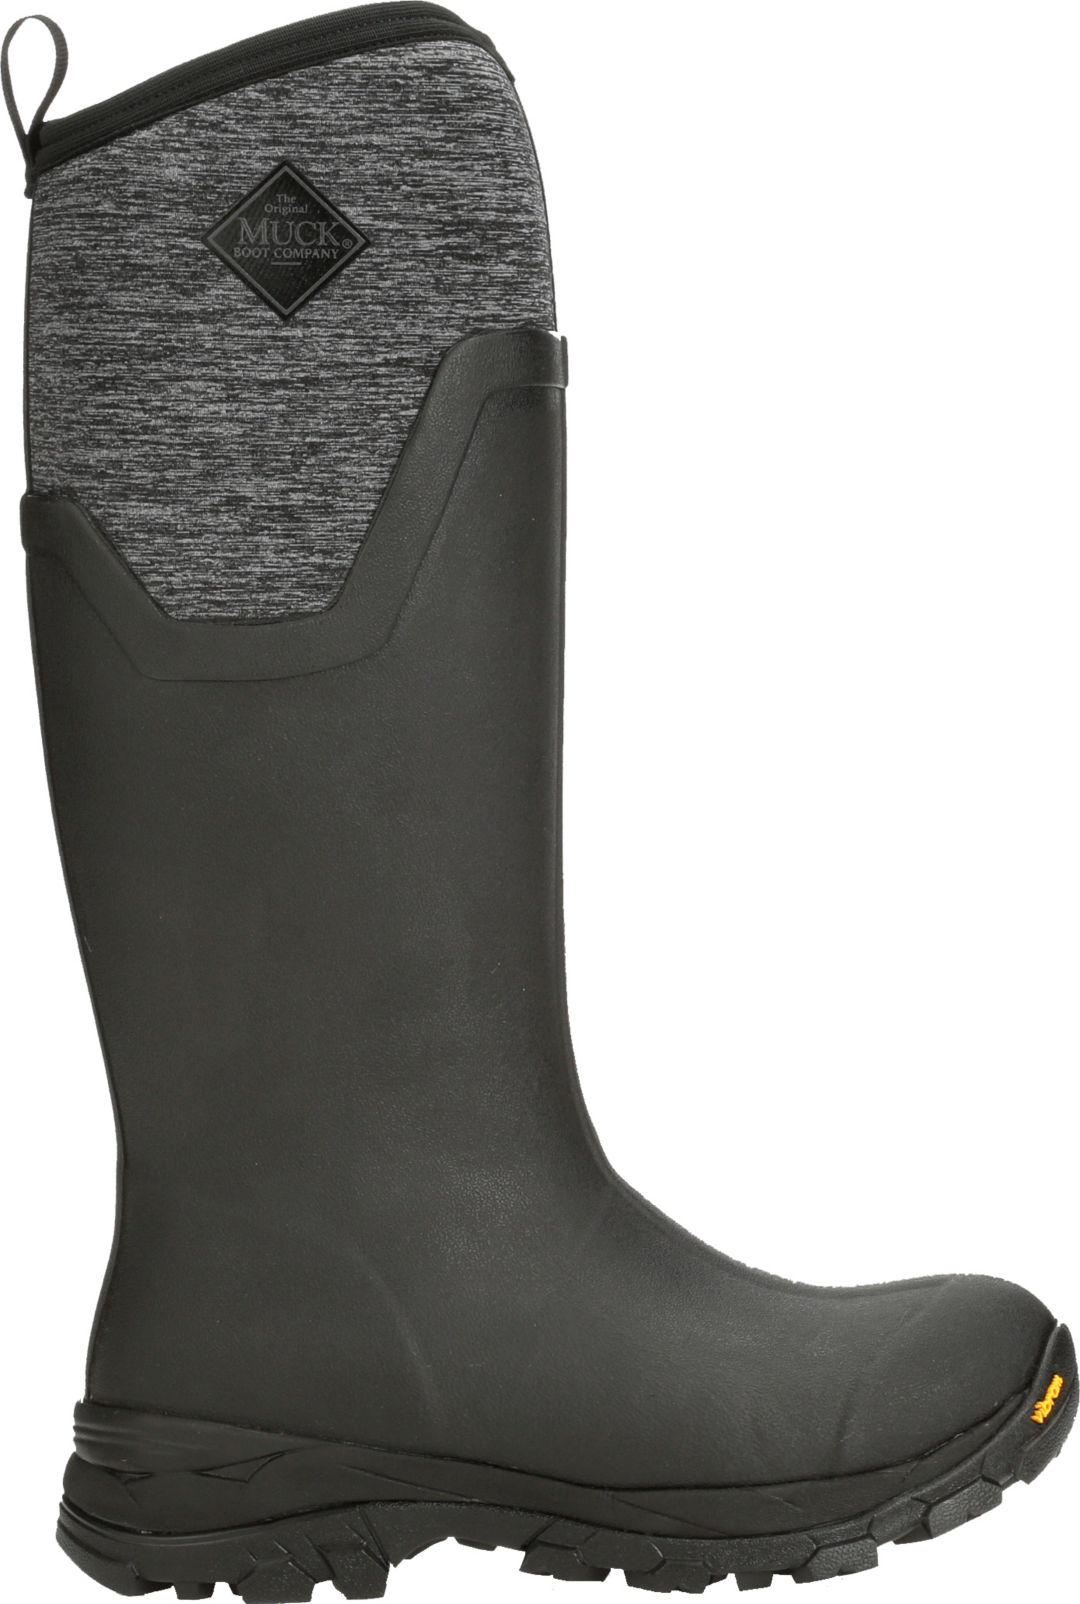 bright n colour watch agreatvarietyofmodels Muck Boots Women's Arctic Ice Tall Waterproof Winter Boots